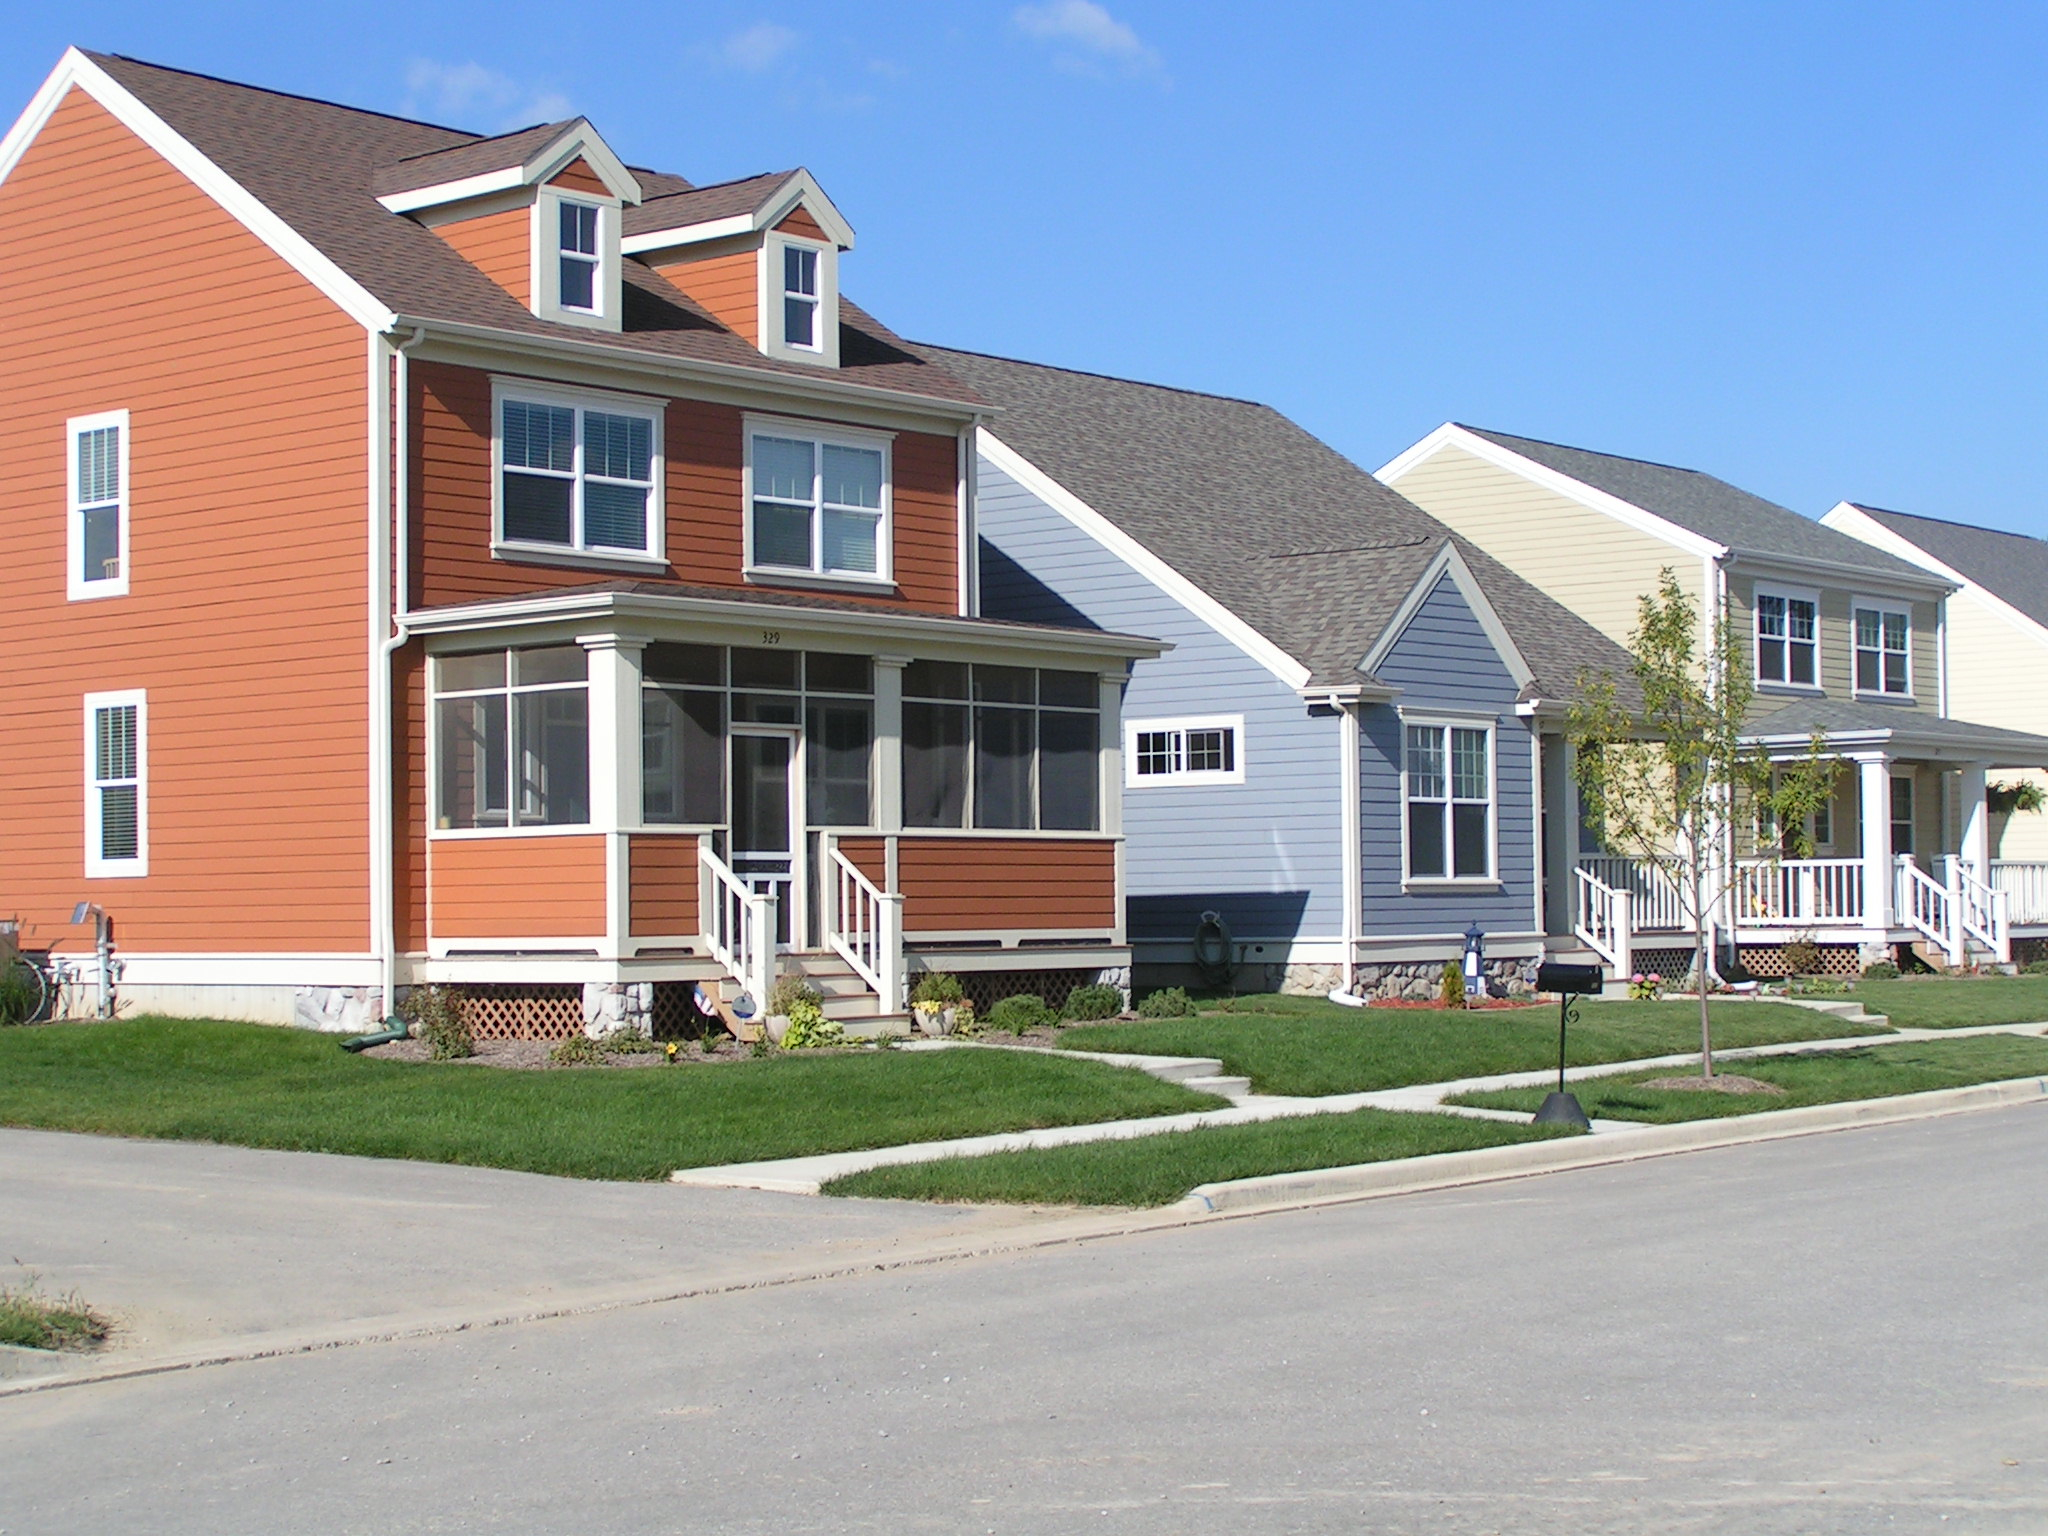 Houses side view